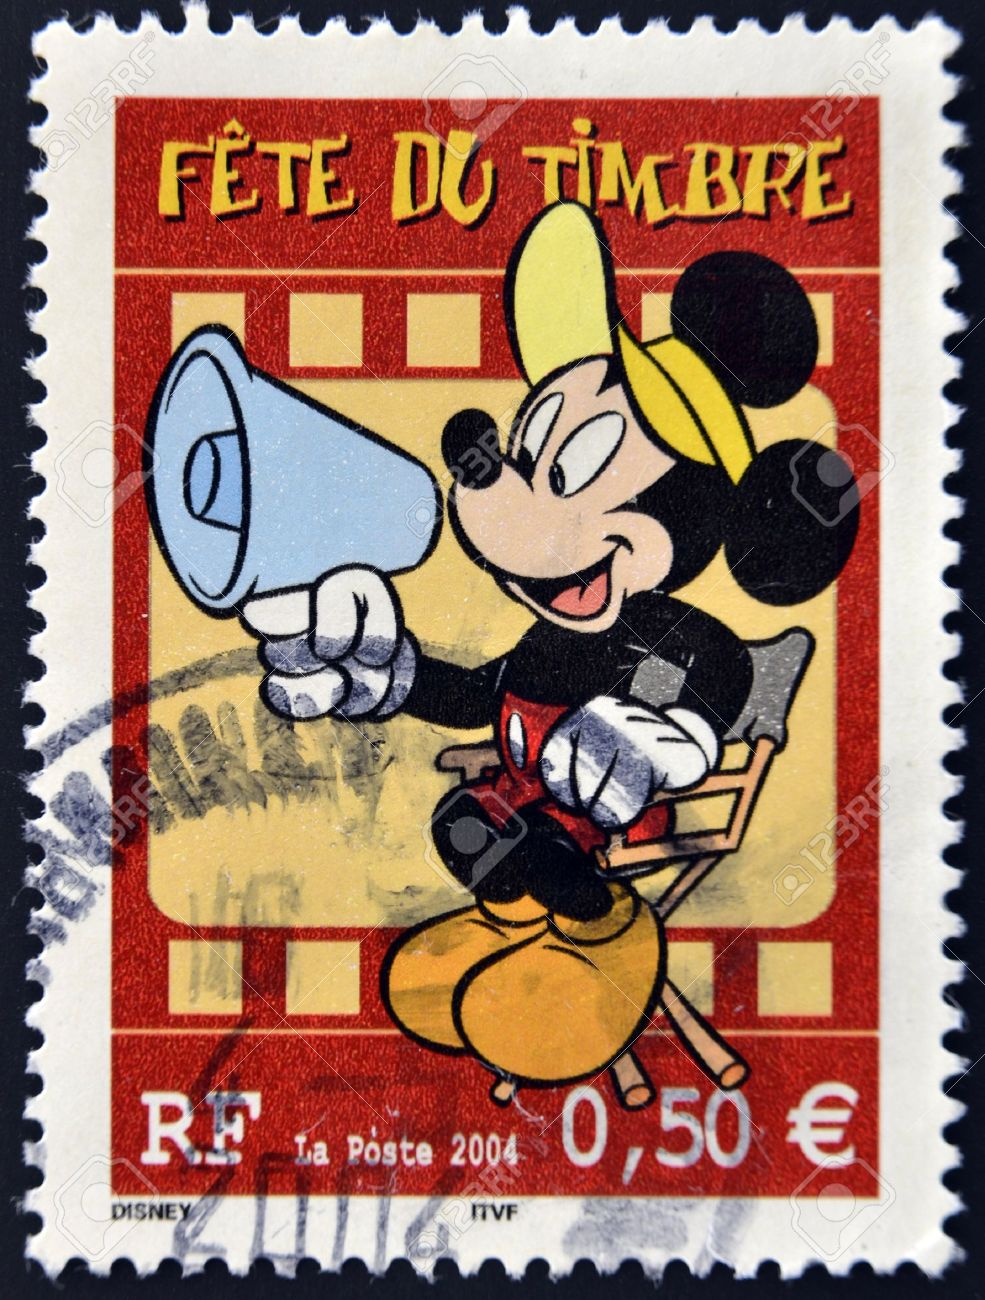 FRANCE - CIRCA 2004: A stamp printed in France shows Mickey Mouse as a film director, circa 2004  Stock Photo - 11071589